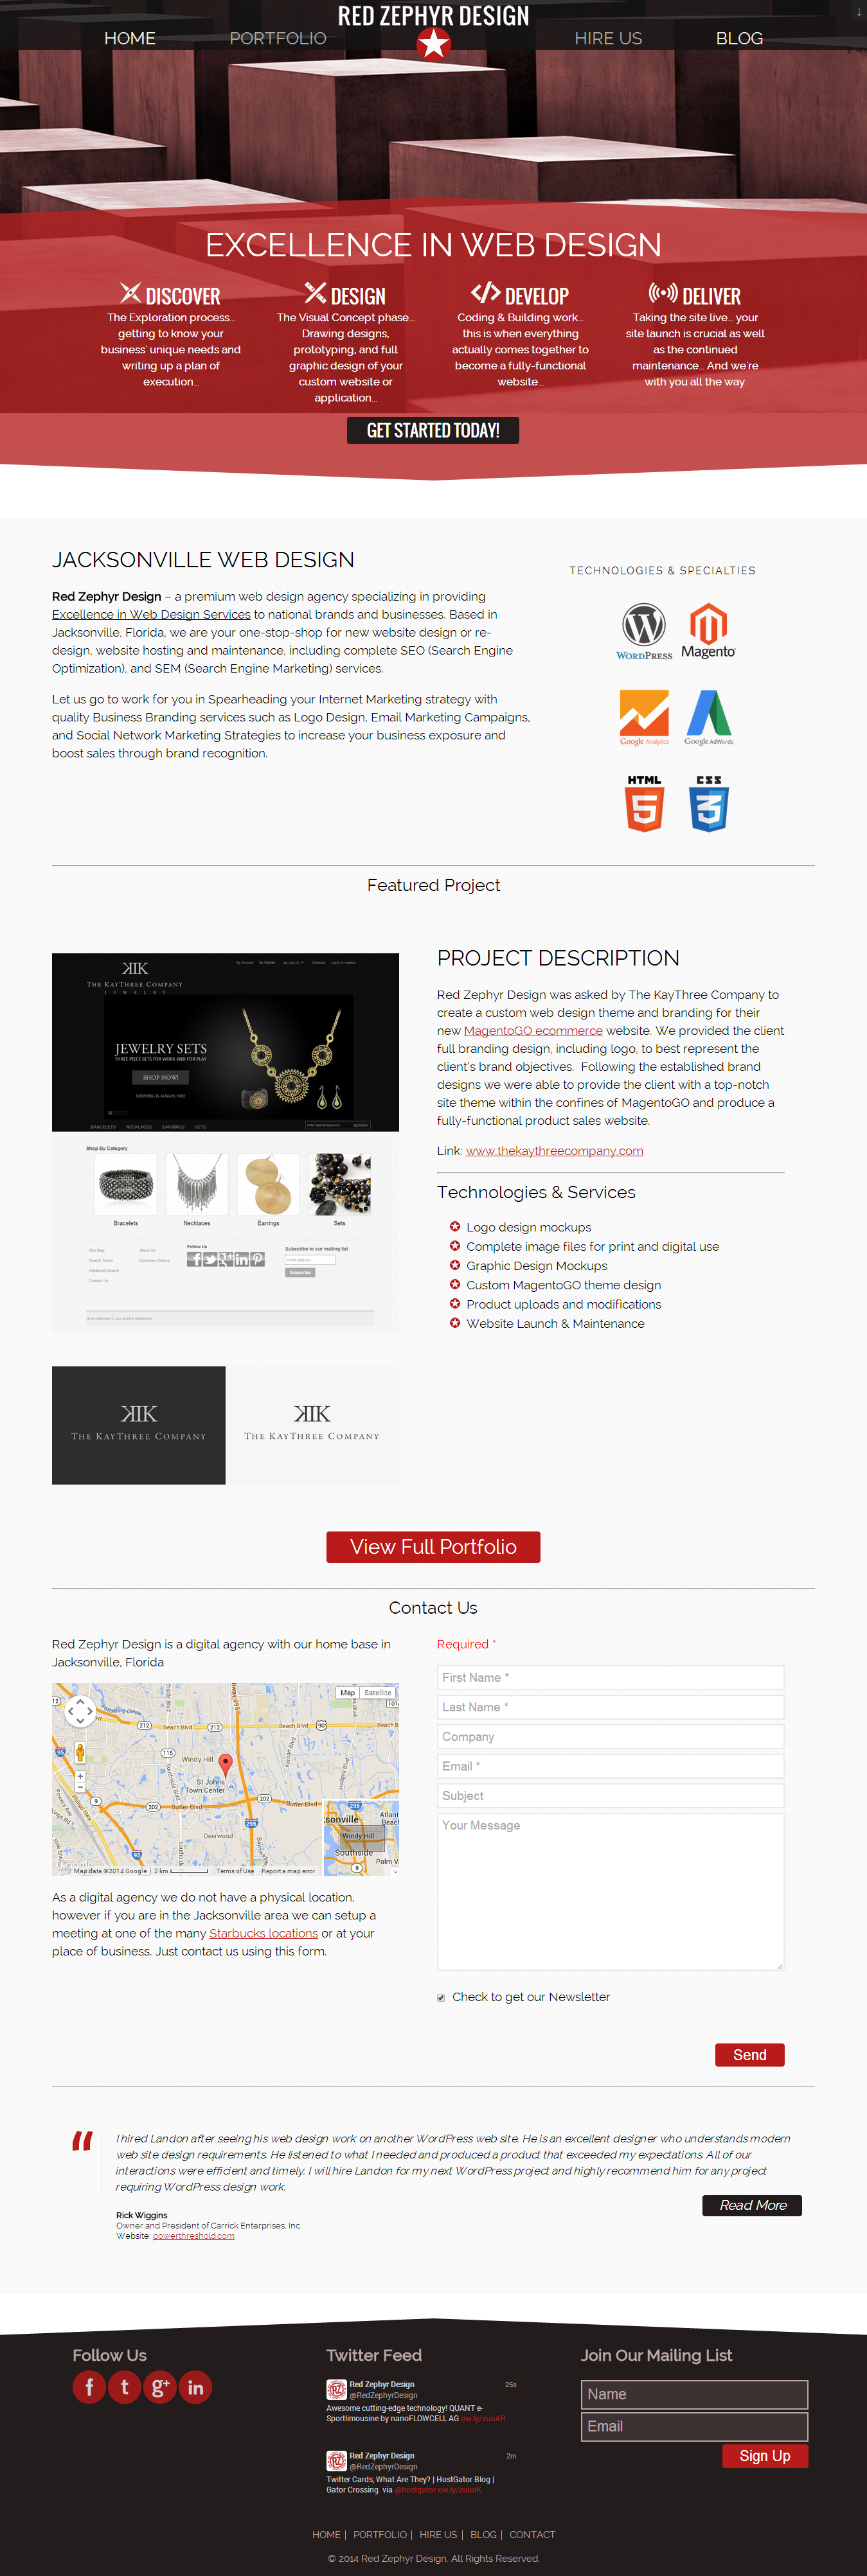 Red Zephyr Design Website Screenshot